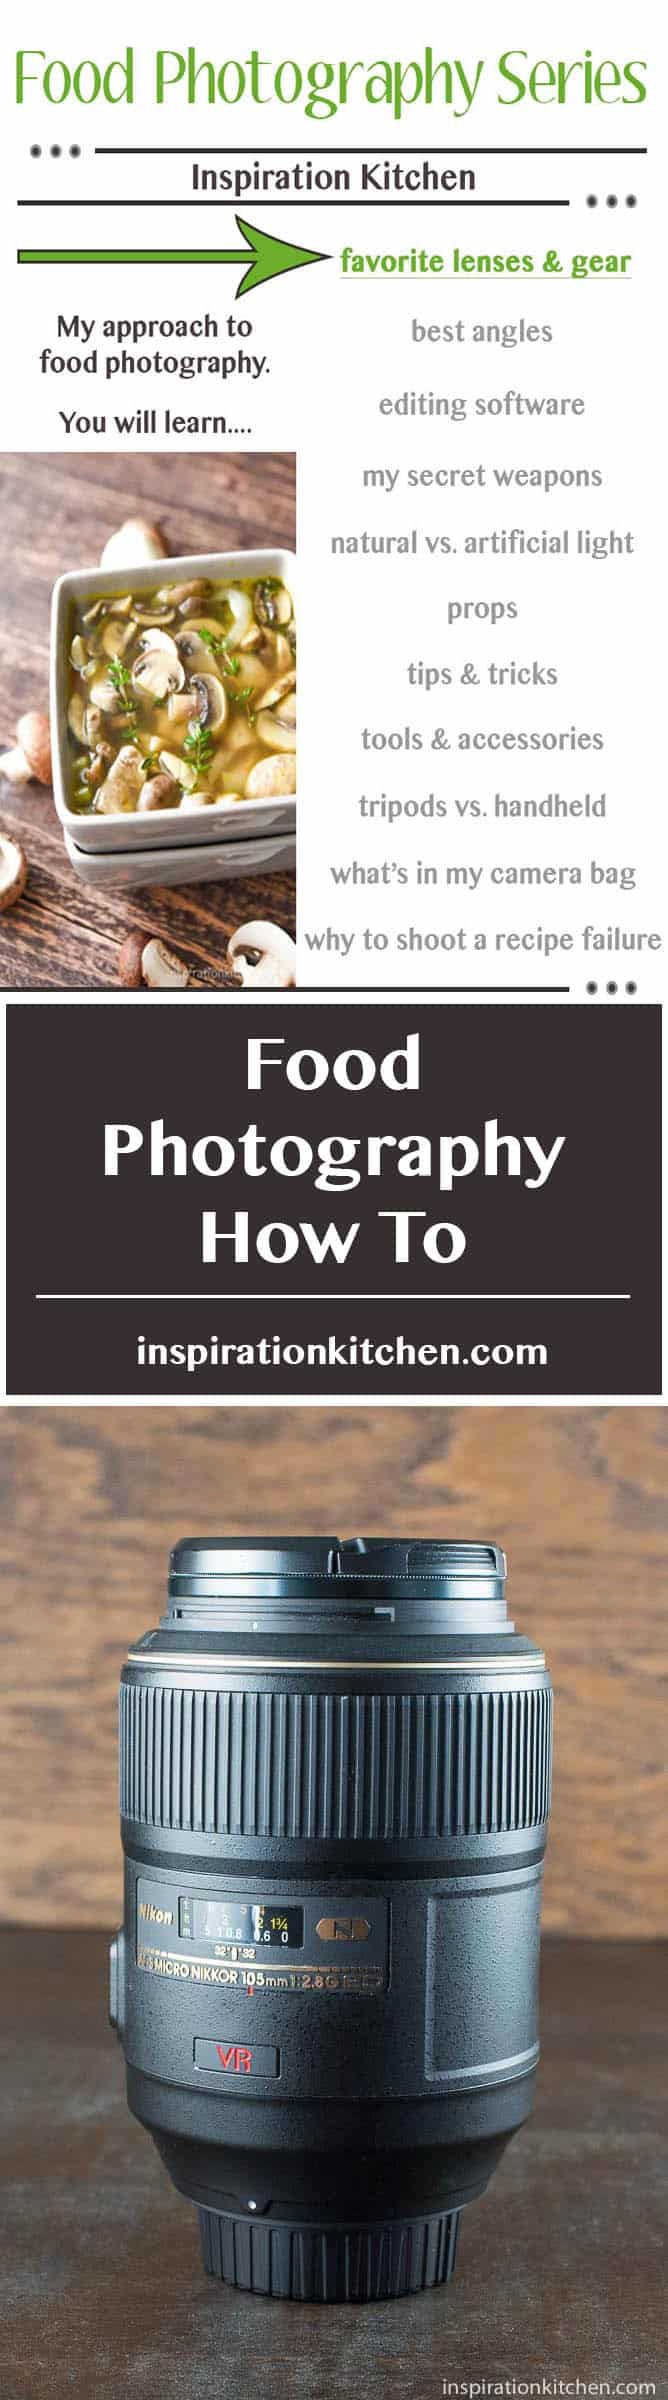 Camera Lenses for Food Photography - inspirationkitchen.com